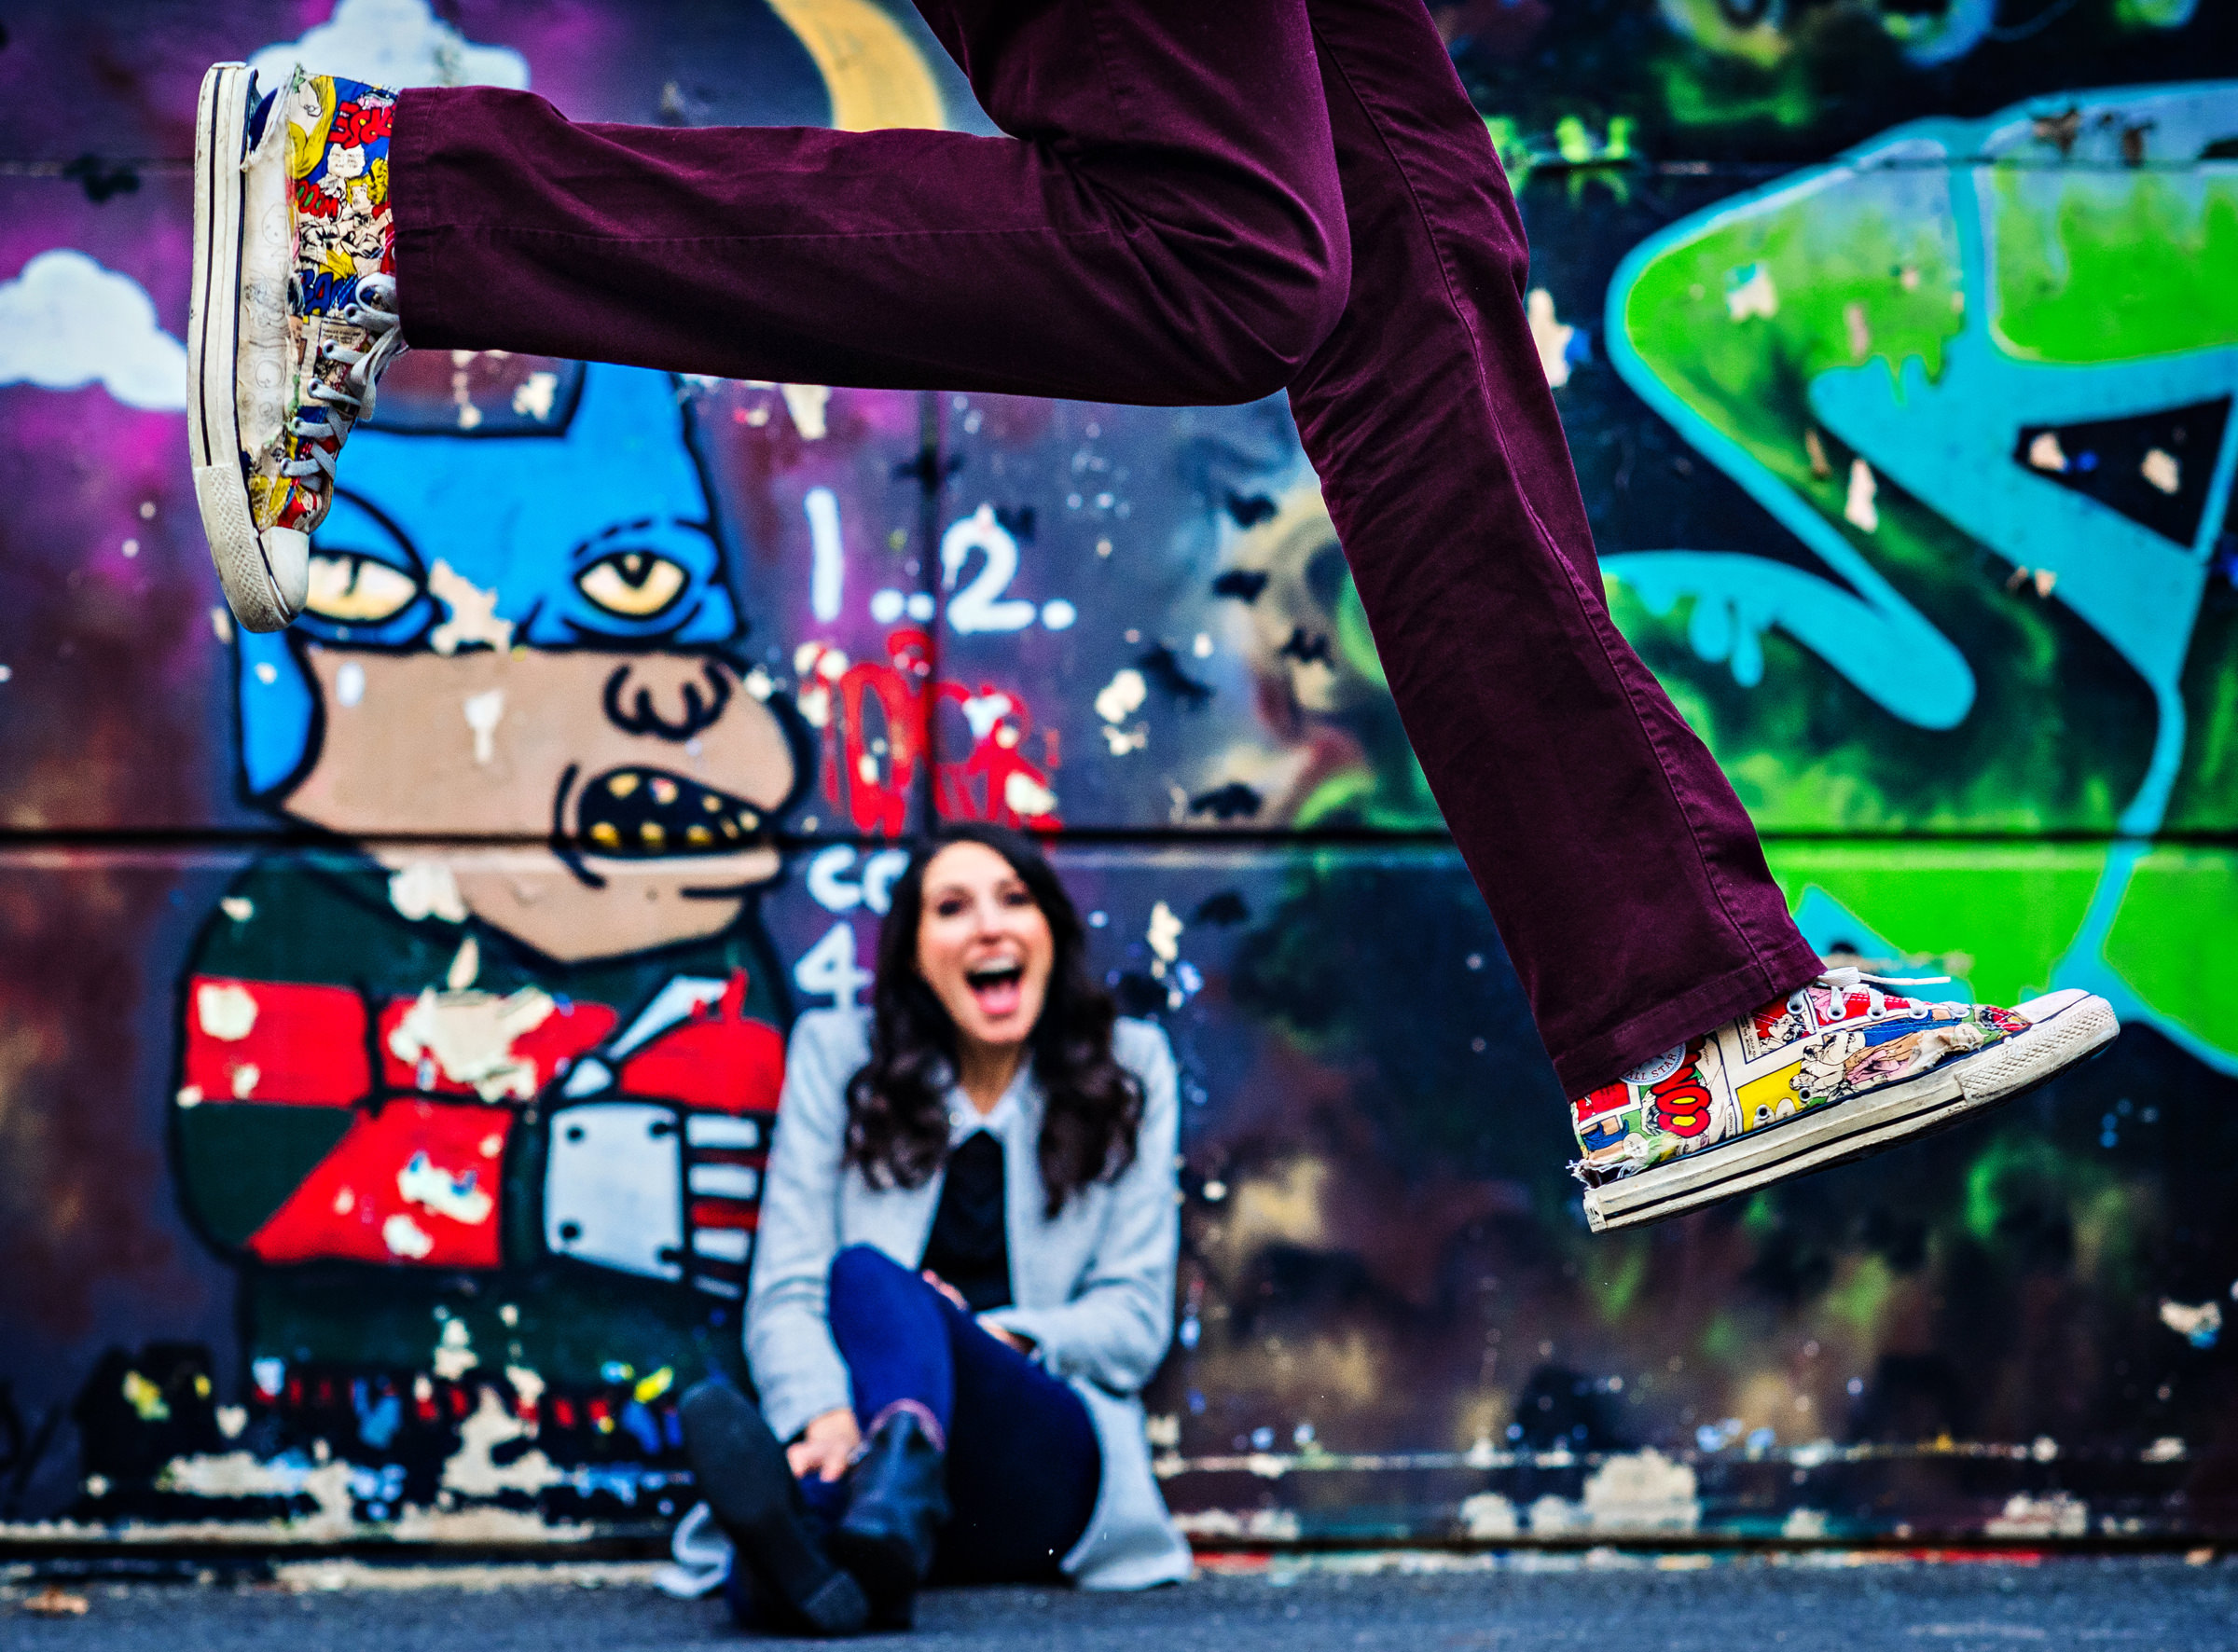 Man leaping over woman against graffiti wall - photo by Jeff Tisman Photography